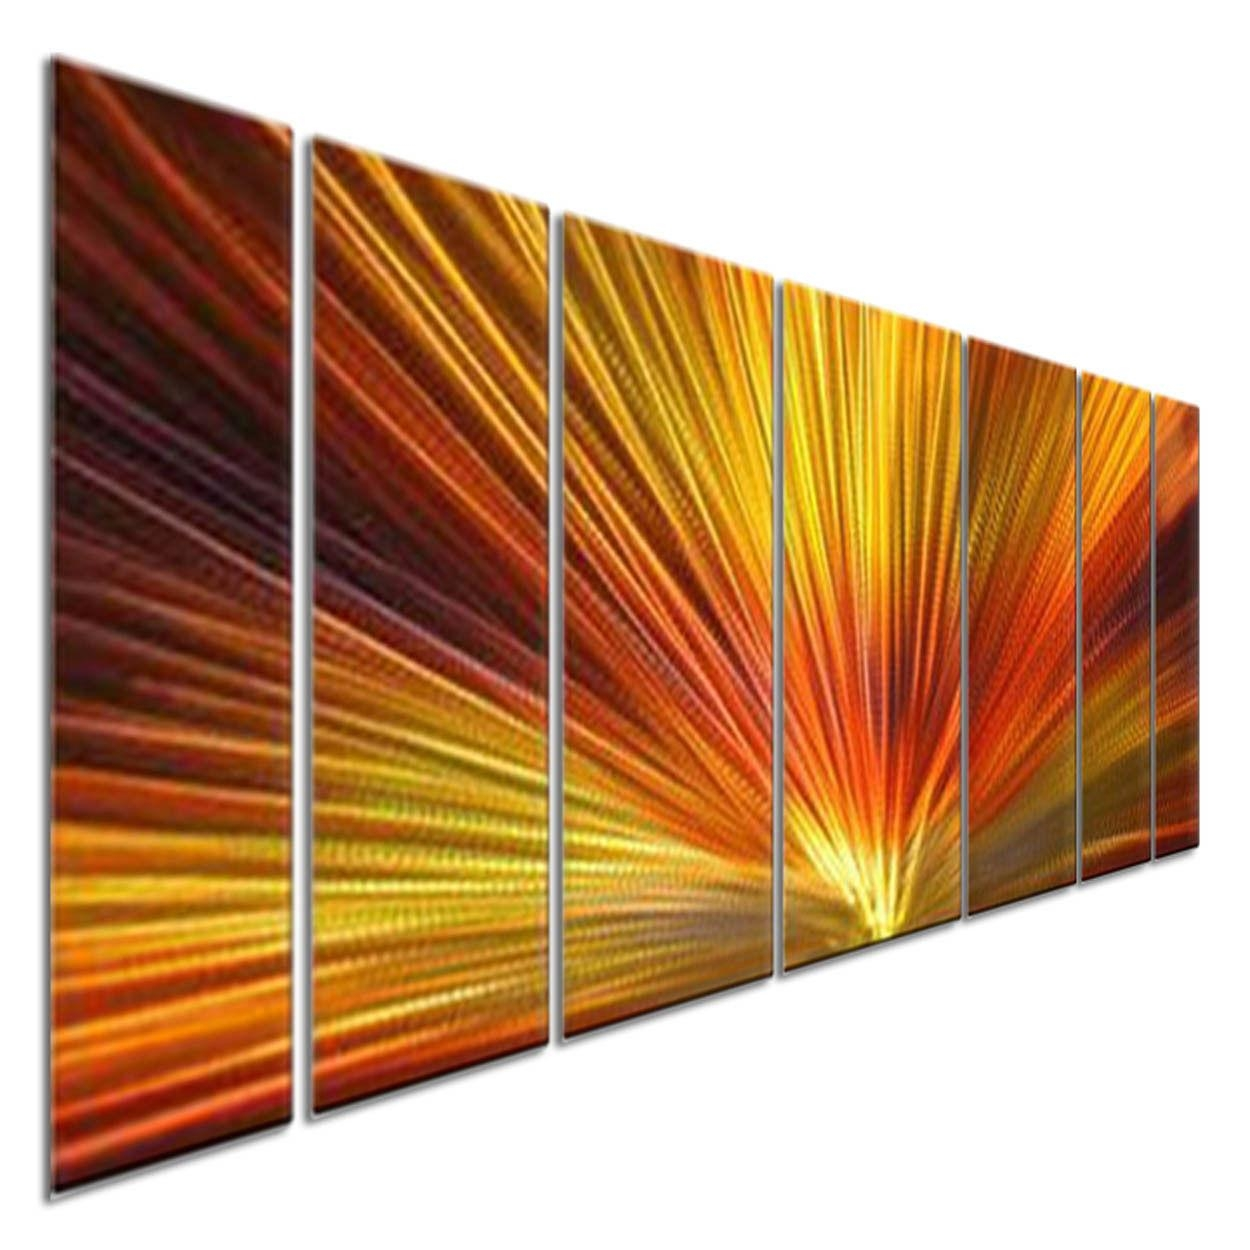 Metal Wall Art Sculpture Ash Carl Abstract Painting Modern Home In Ash Carl Metal Wall Art (Image 9 of 20)